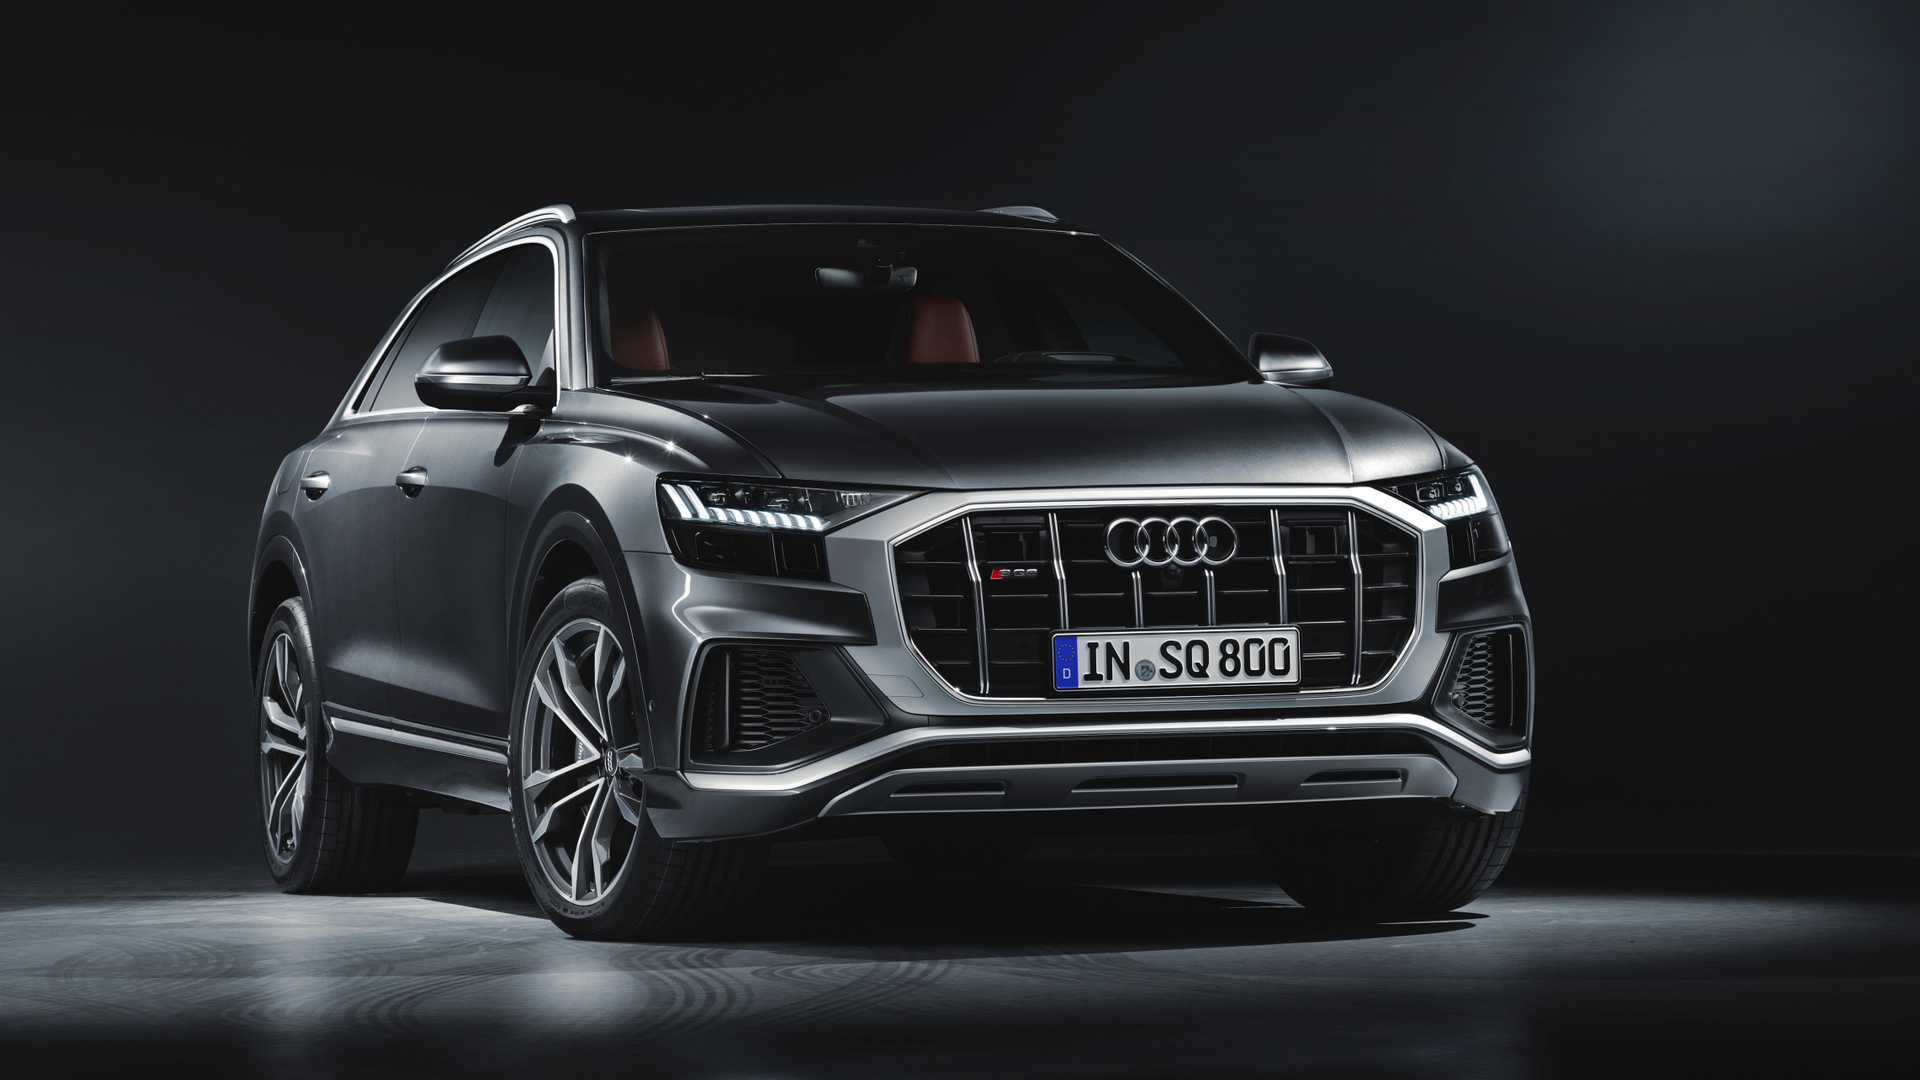 2020 Audi Q8: News, SQ8, RS Q8, Price >> 2020 Audi Sq8 Tdi Priced At Over 100k As Most Powerful